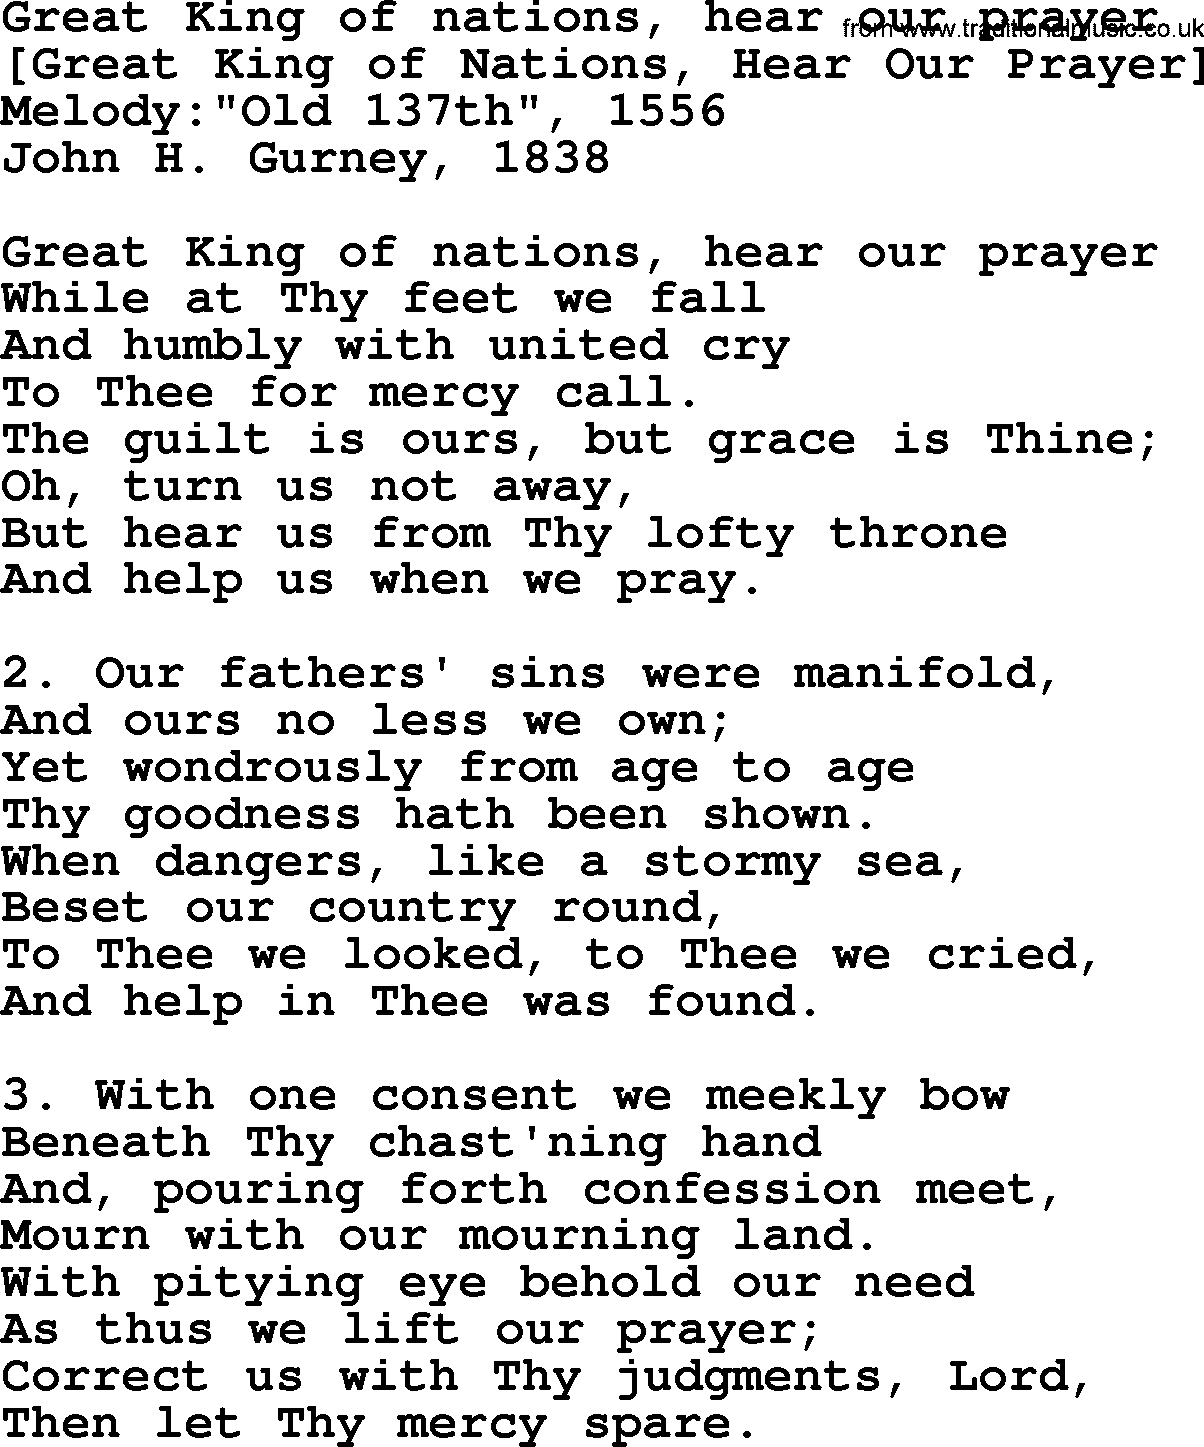 Great king of nations hear our prayer as pdf file for printing etc